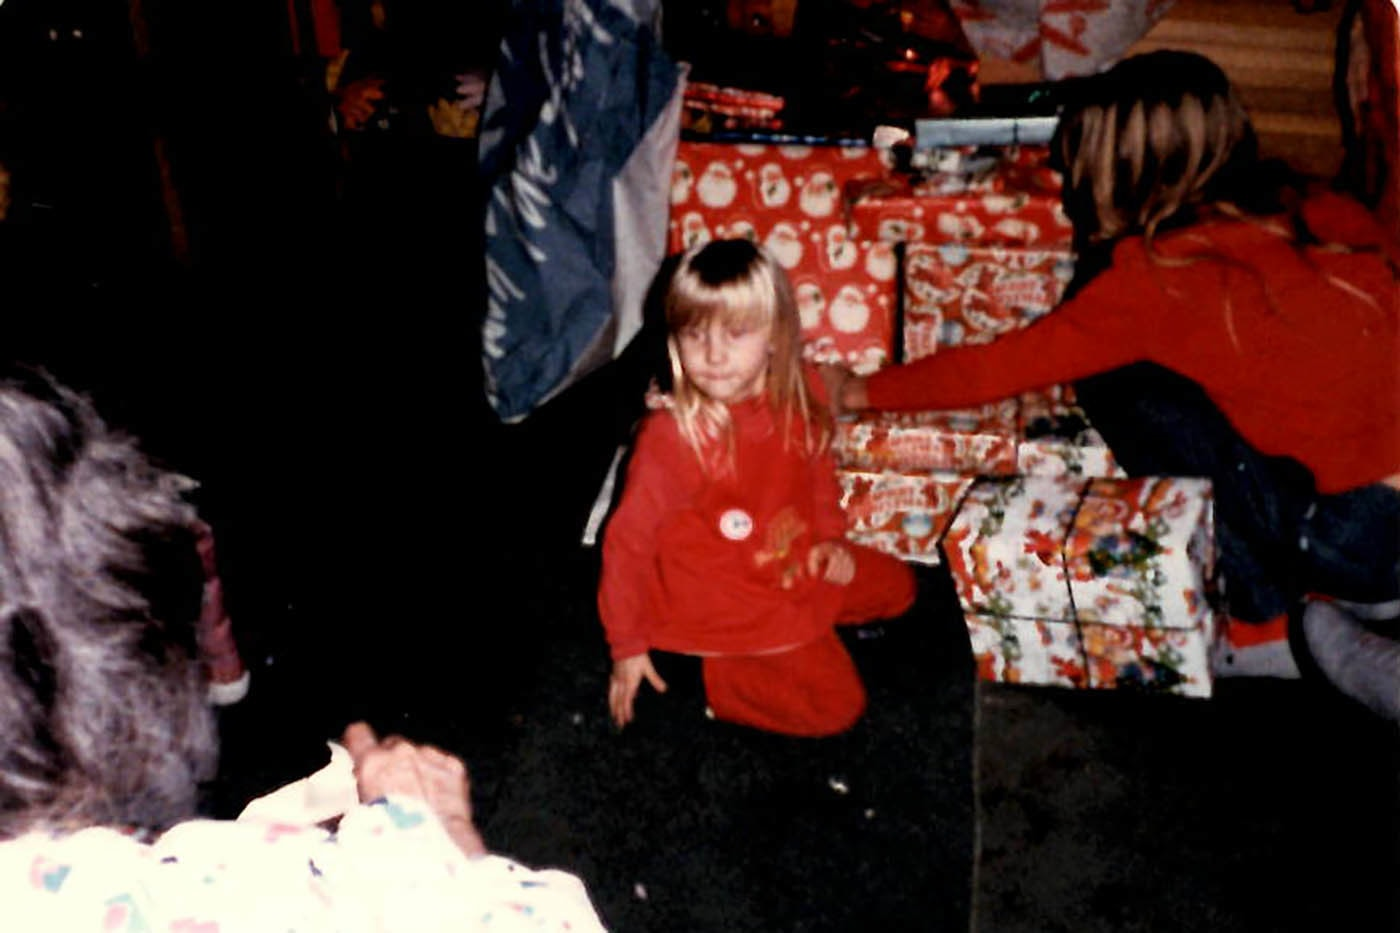 Val opening Christmas presents as a child of the 80s.